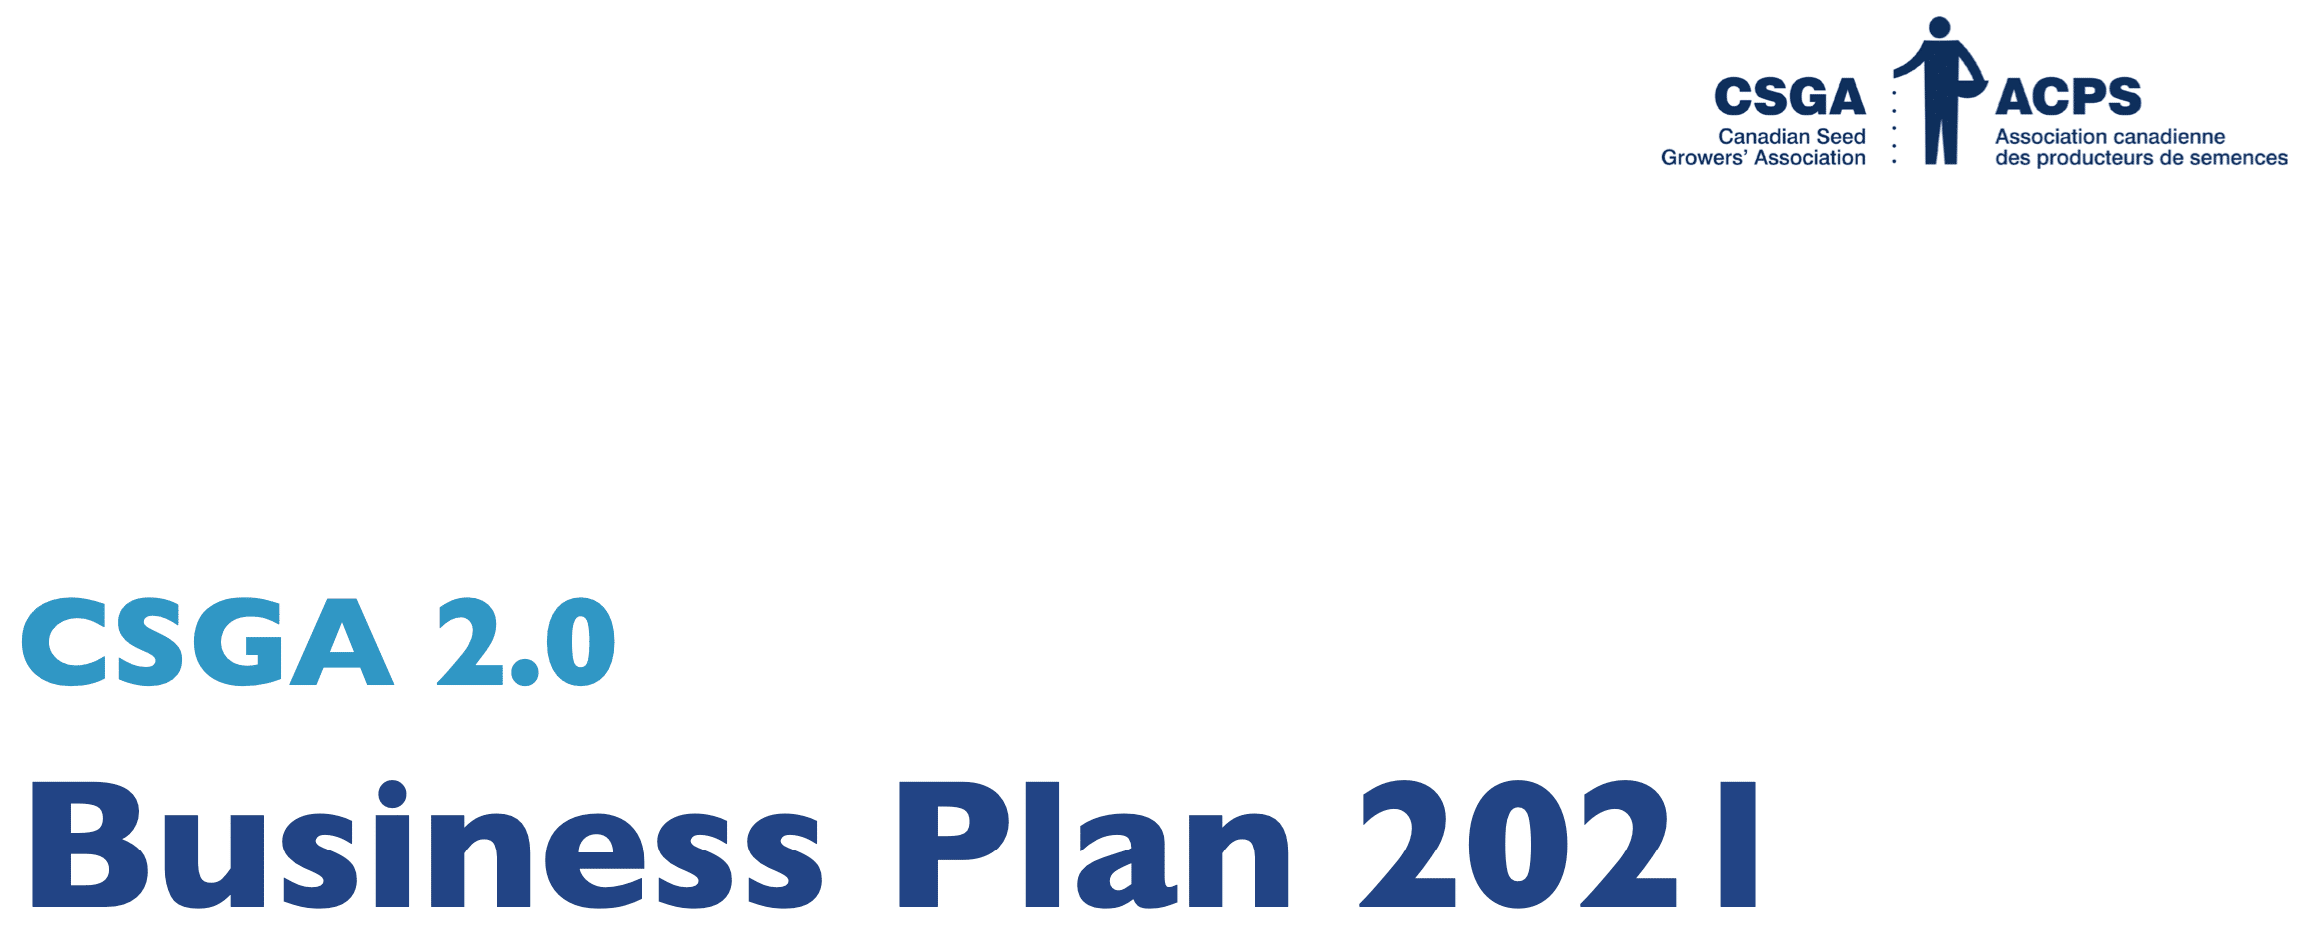 CSGA 2.0 Business Plan 2021